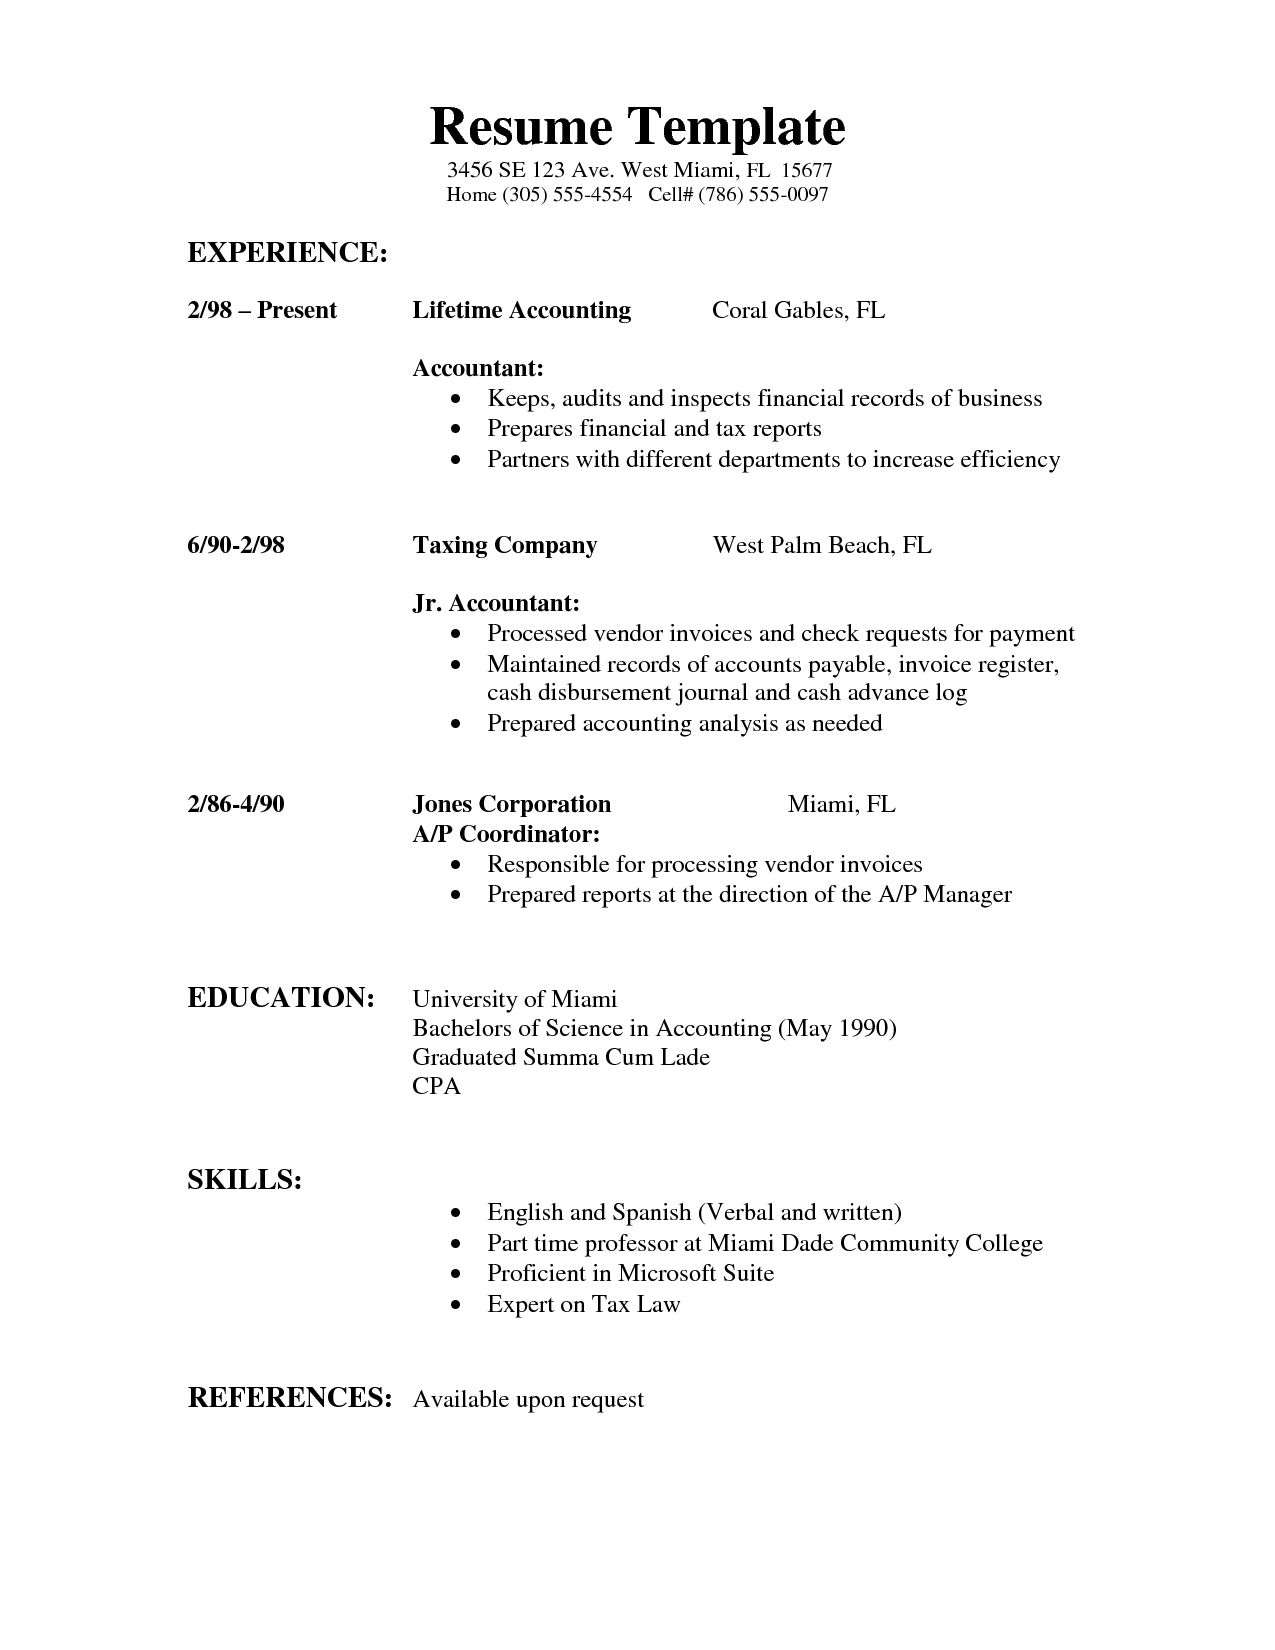 Sample Of A Resume For A Job L Andr Resume Examples 3 Letter And Resume